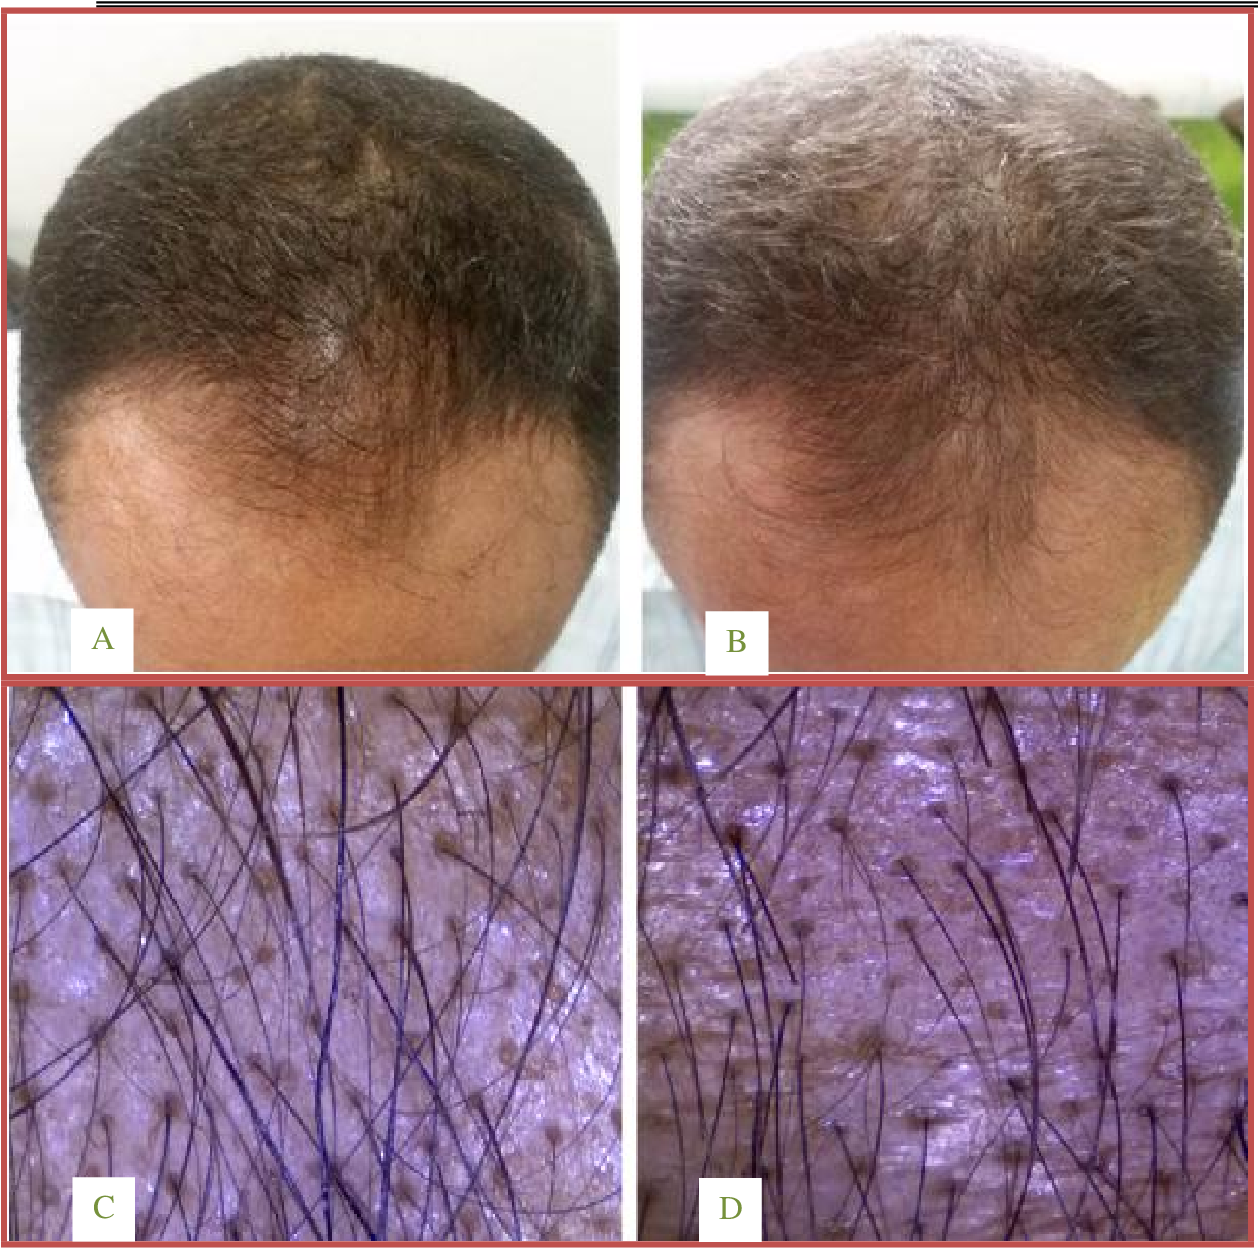 Pdf Topical Dutasteride With Microneedling In Treatment Of Male Androgenetic Alopecia Semantic Scholar